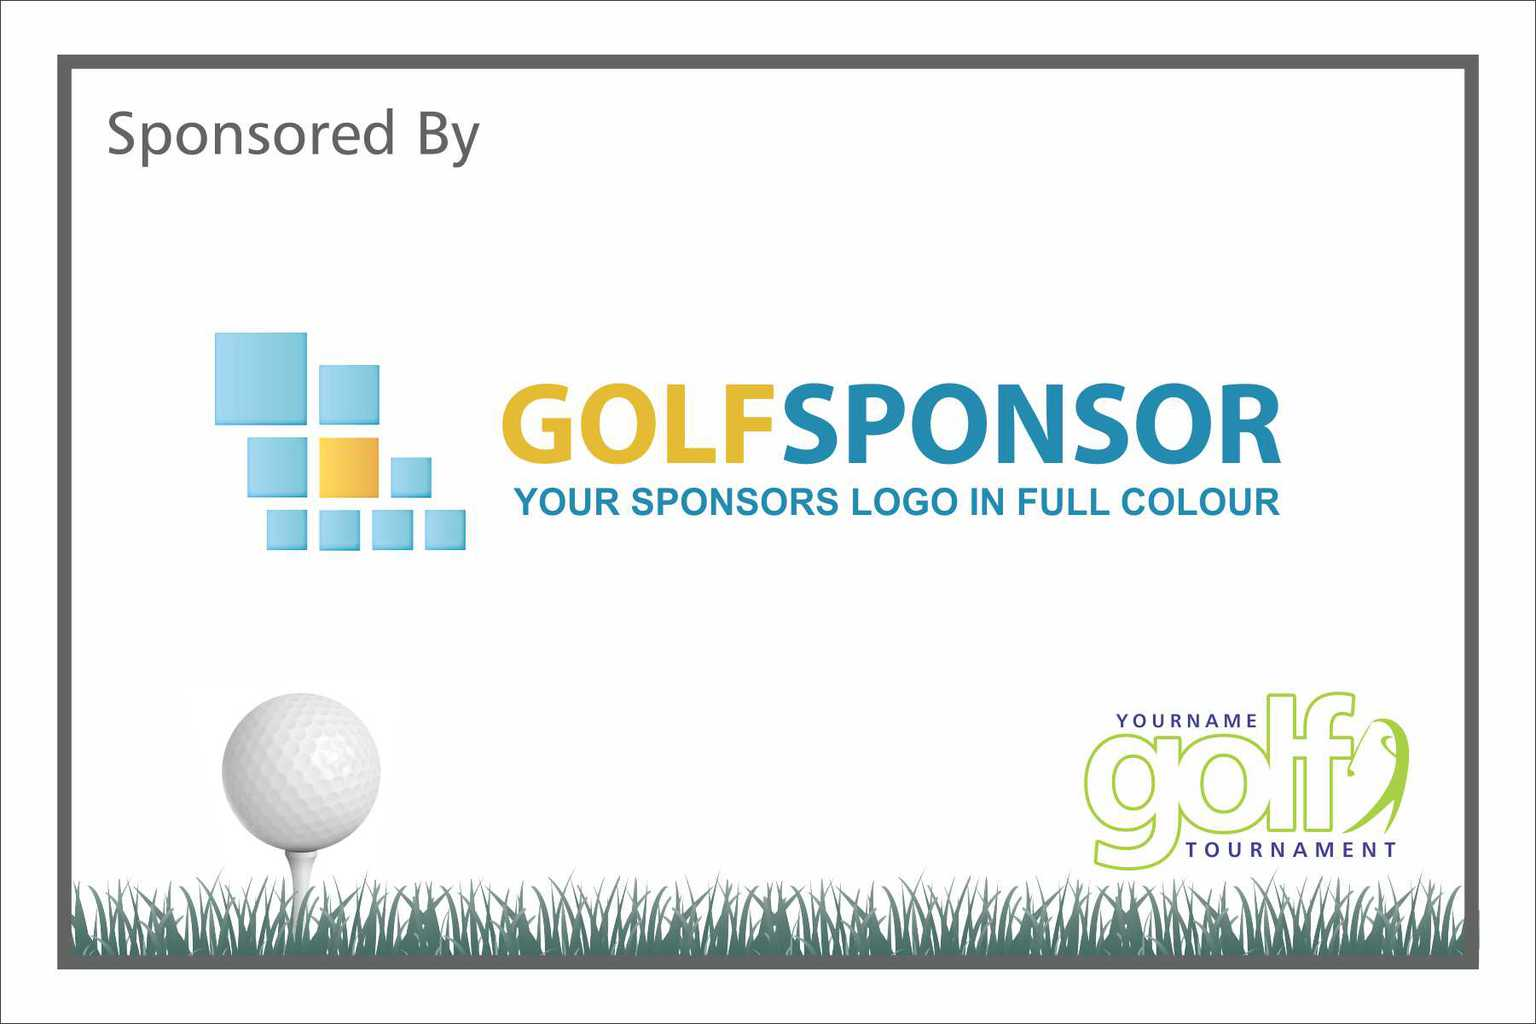 graphic-creations.mb.ca/golf-tournament-signs